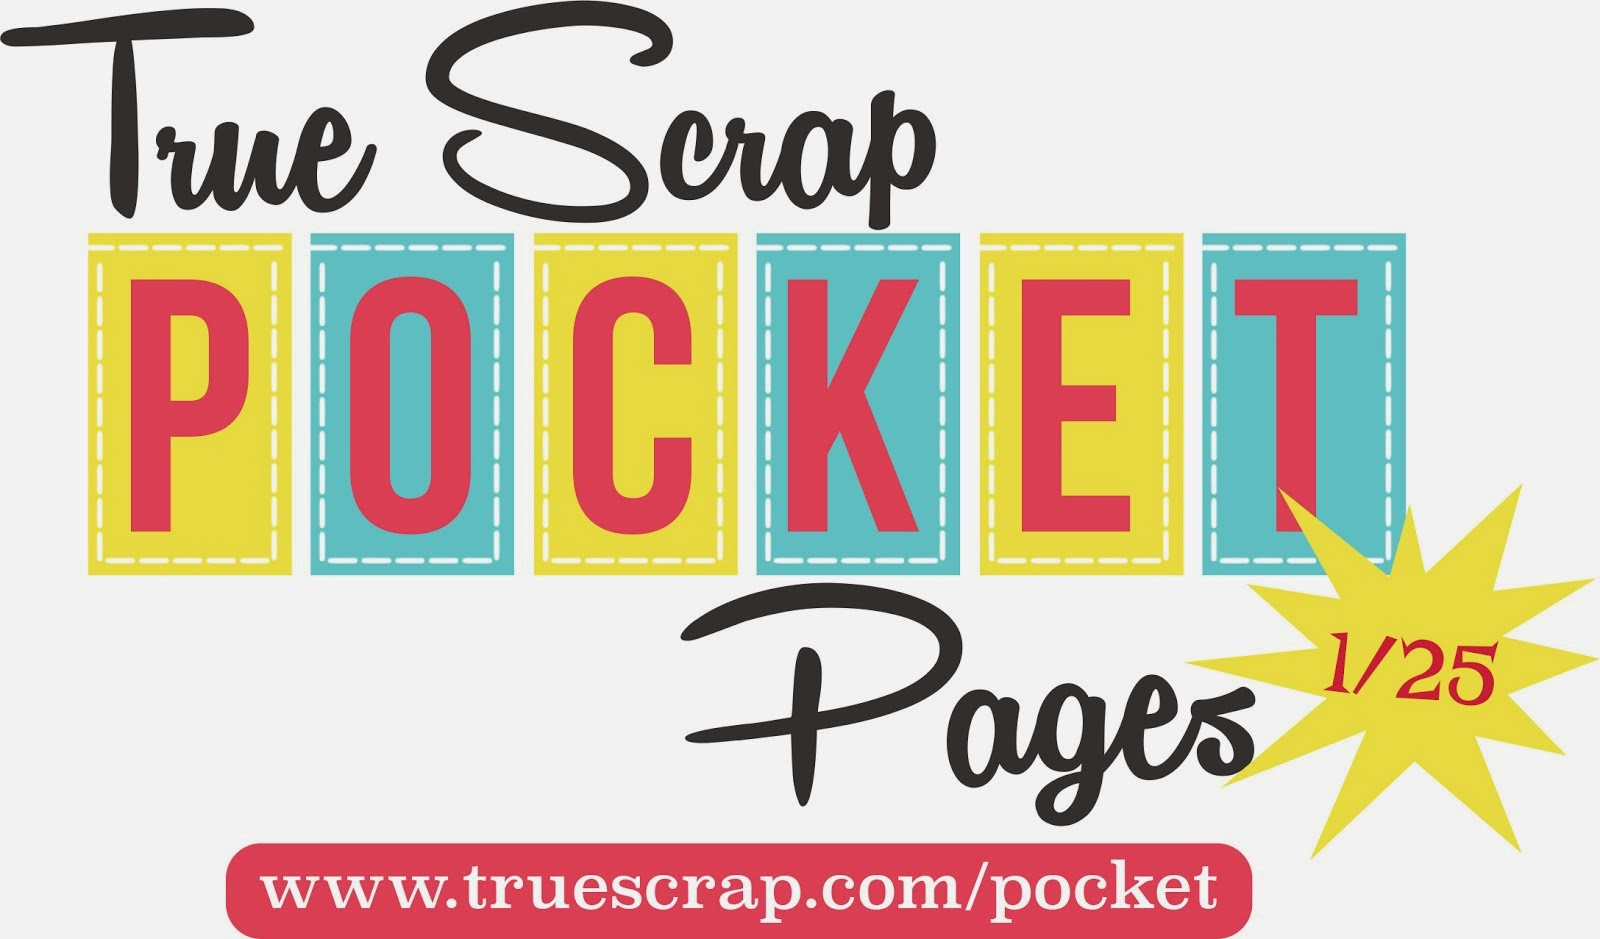 True Scrap Pocket Pages